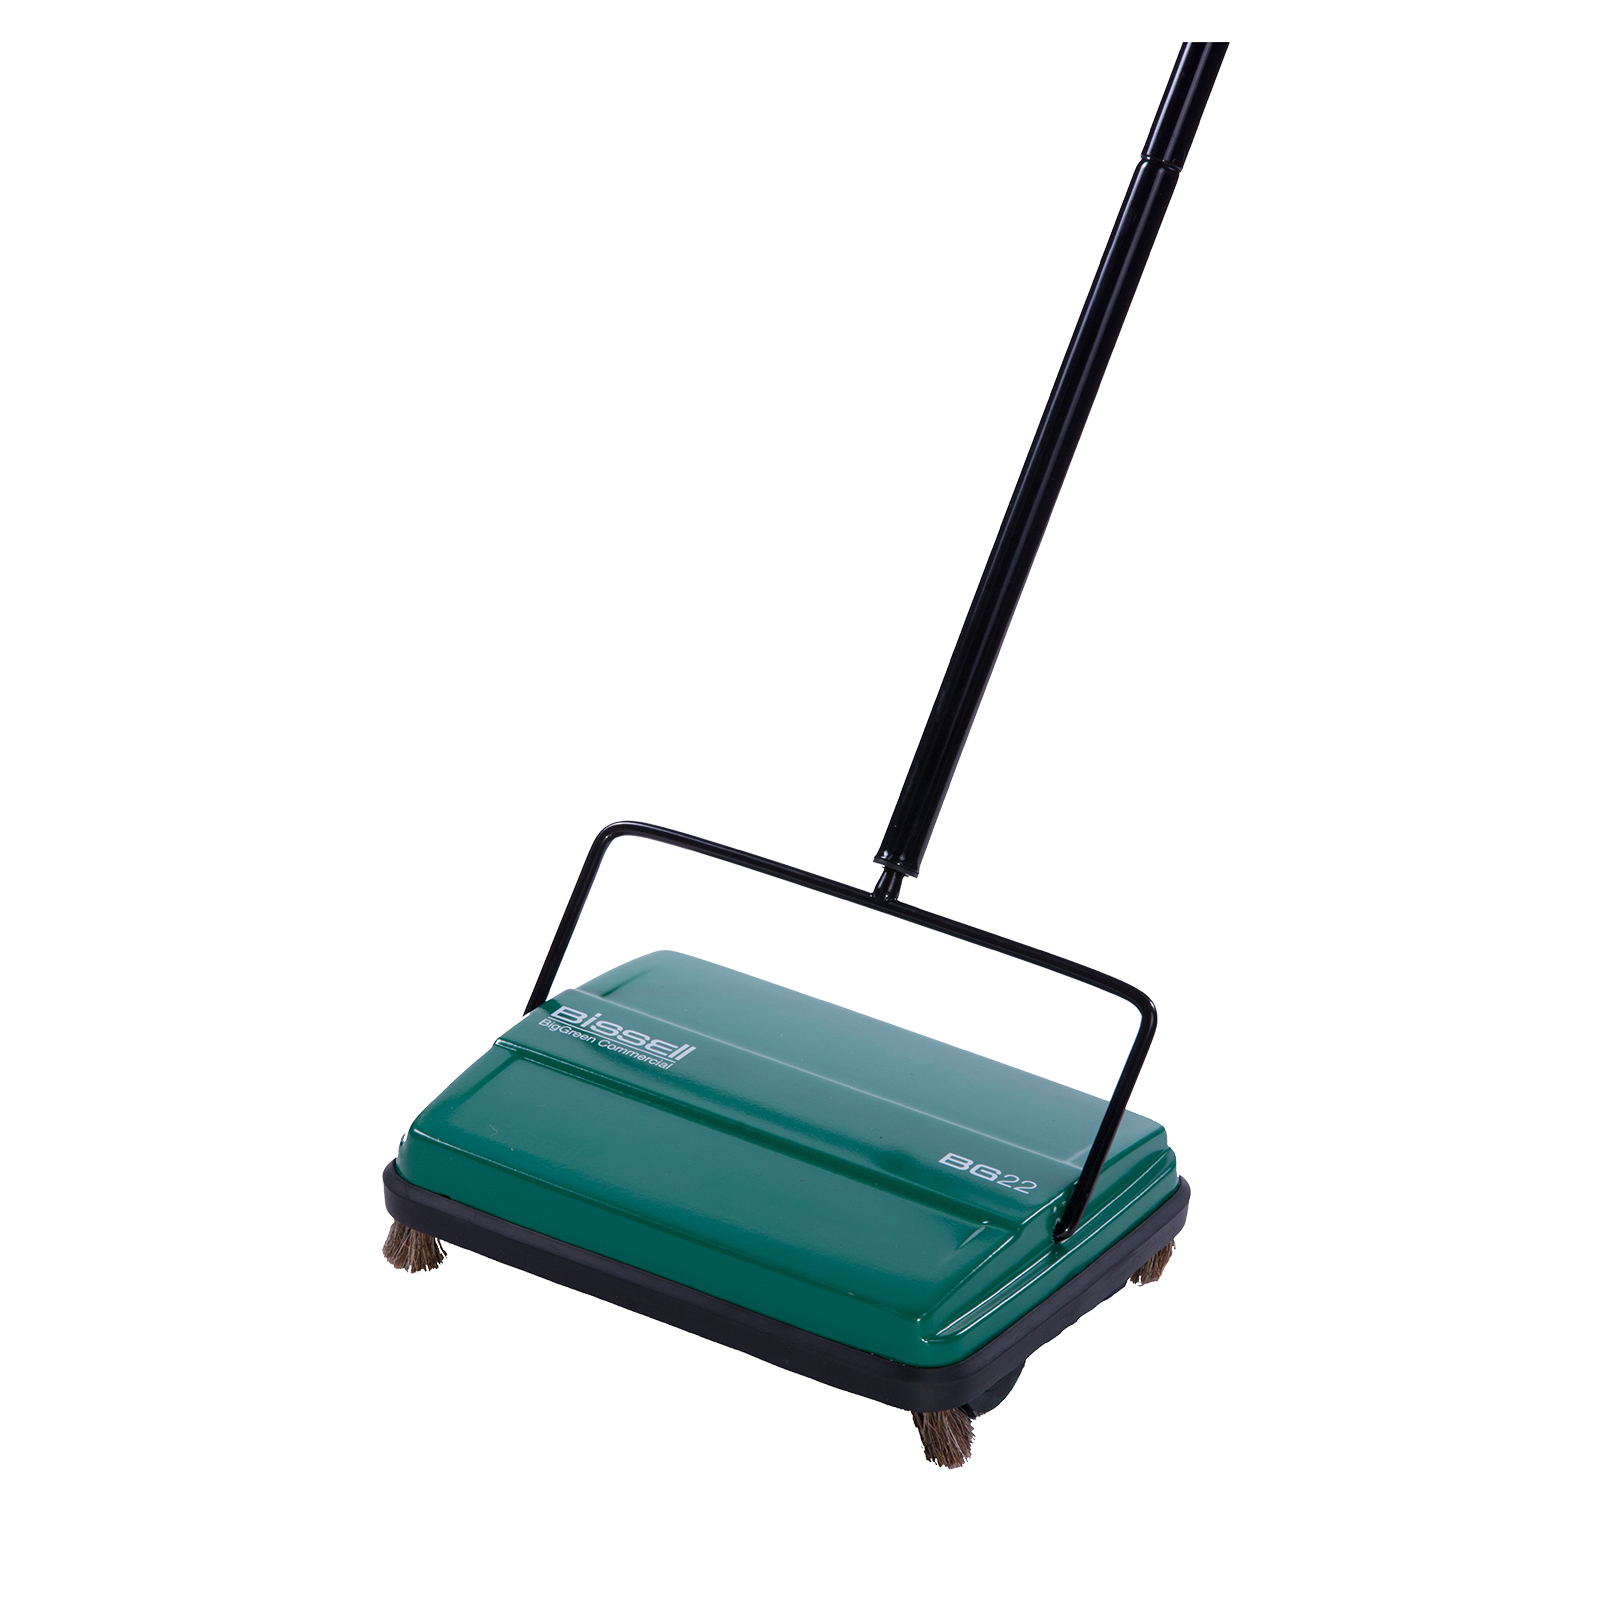 Bissell Big Green Commercial BG22 floor sweeper